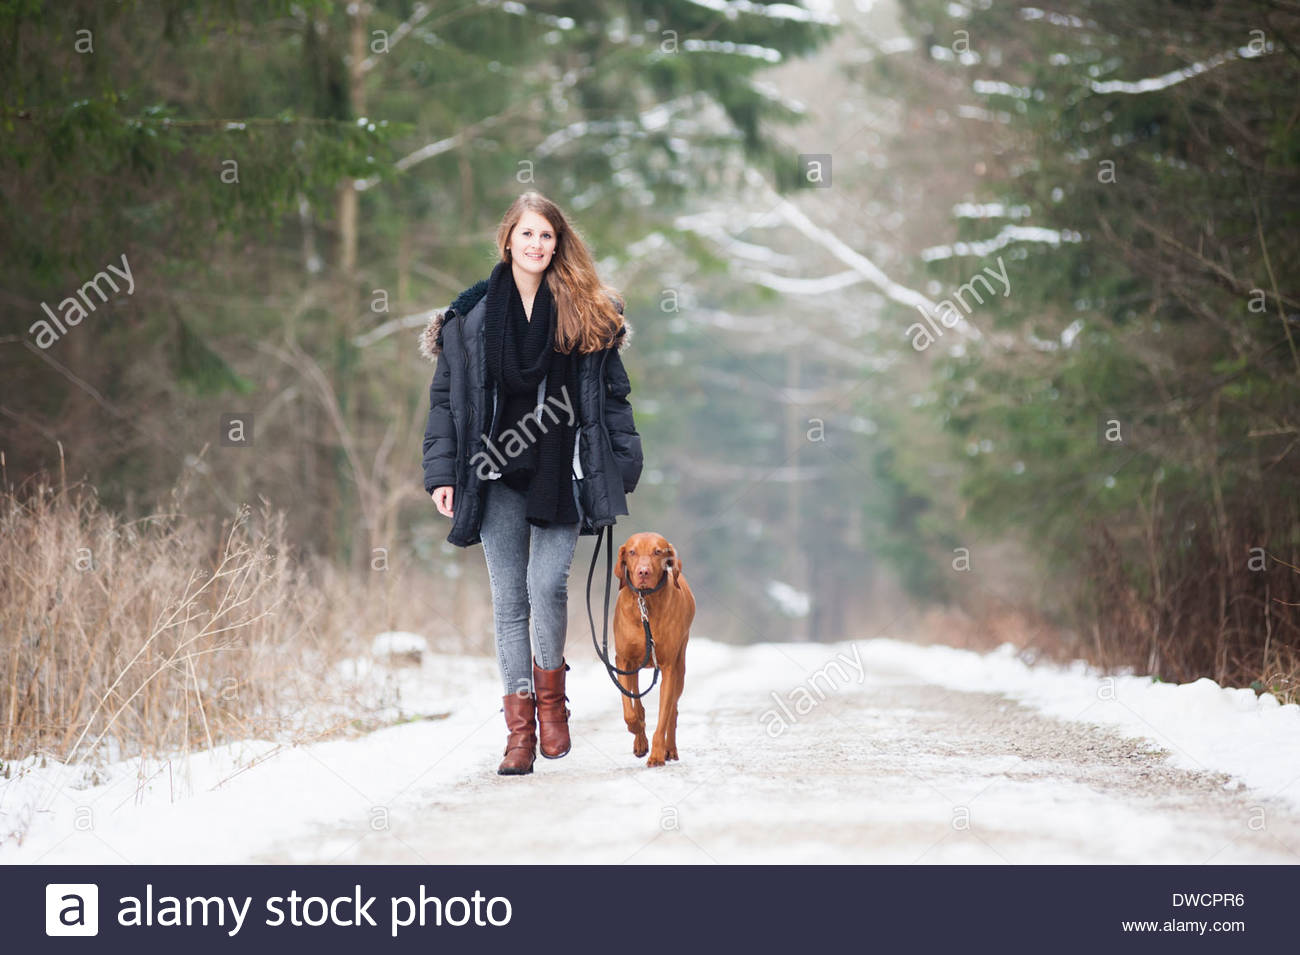 Young woman walking her dog on country road in winter - Stock Image